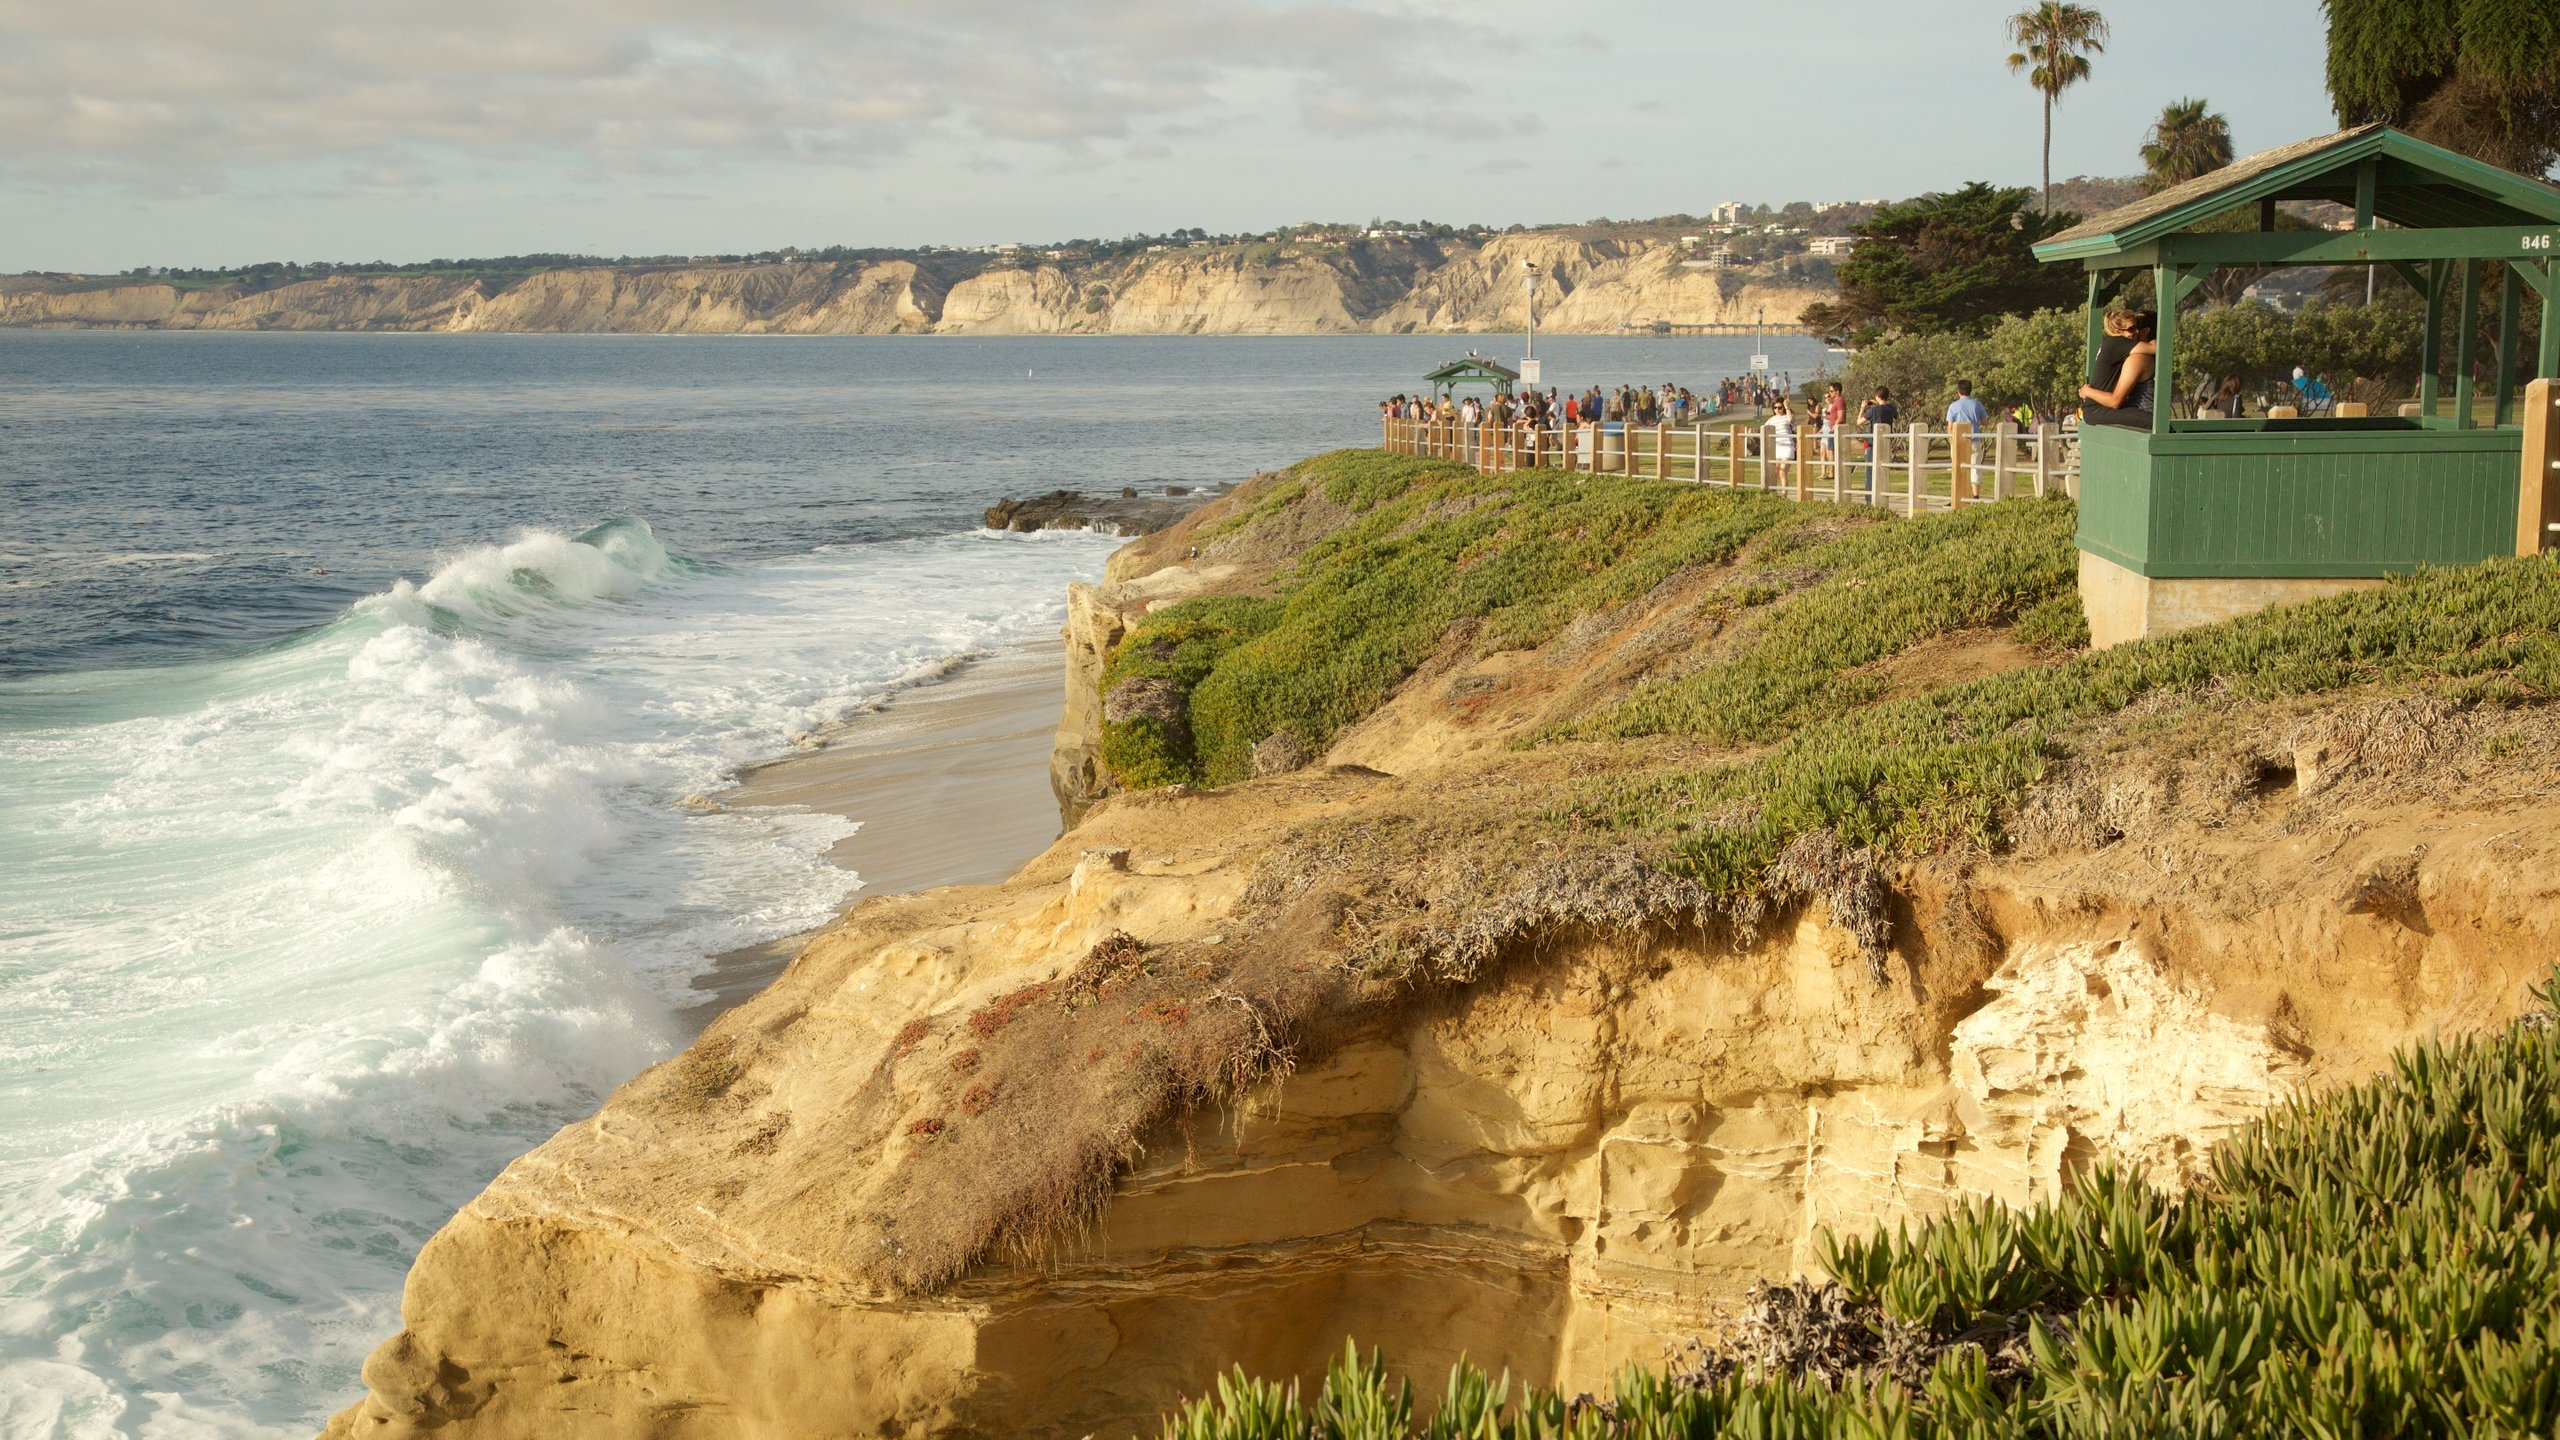 La Jolla which includes rugged coastline and views